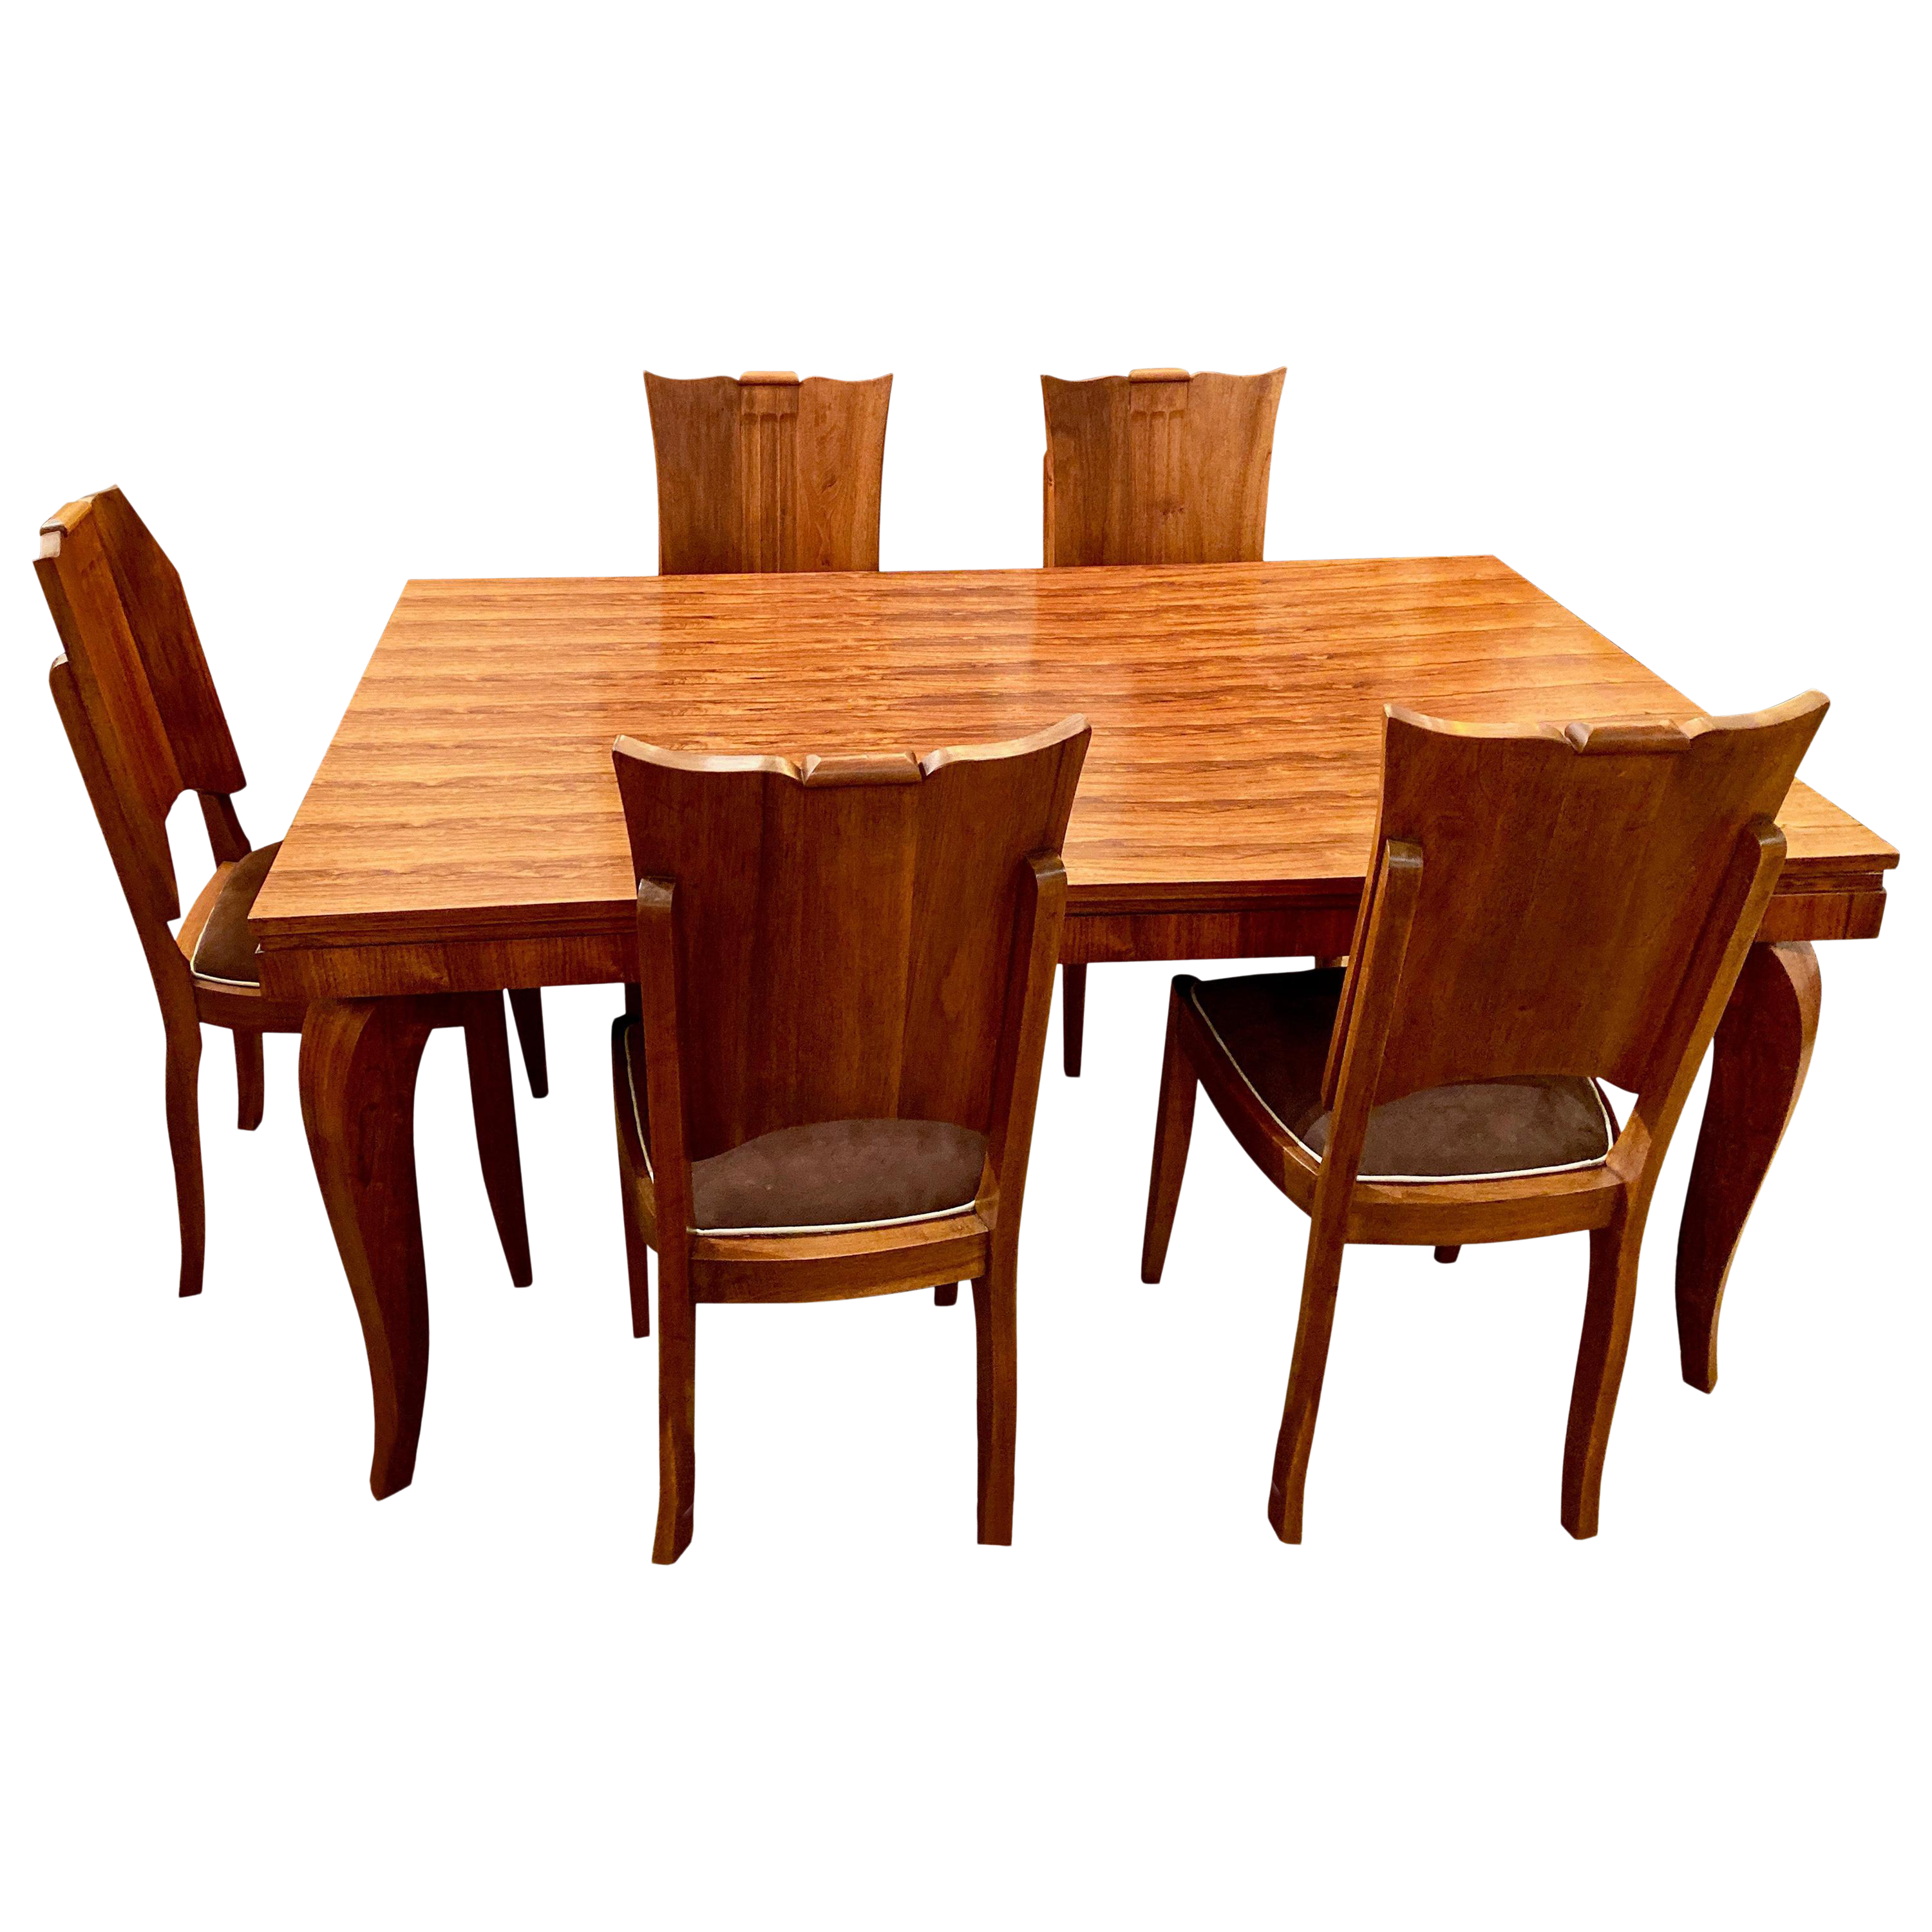 French Art Deco Dining Room Suite Buffet, Table 6 Chairs Attrib. To Jule  Leleu